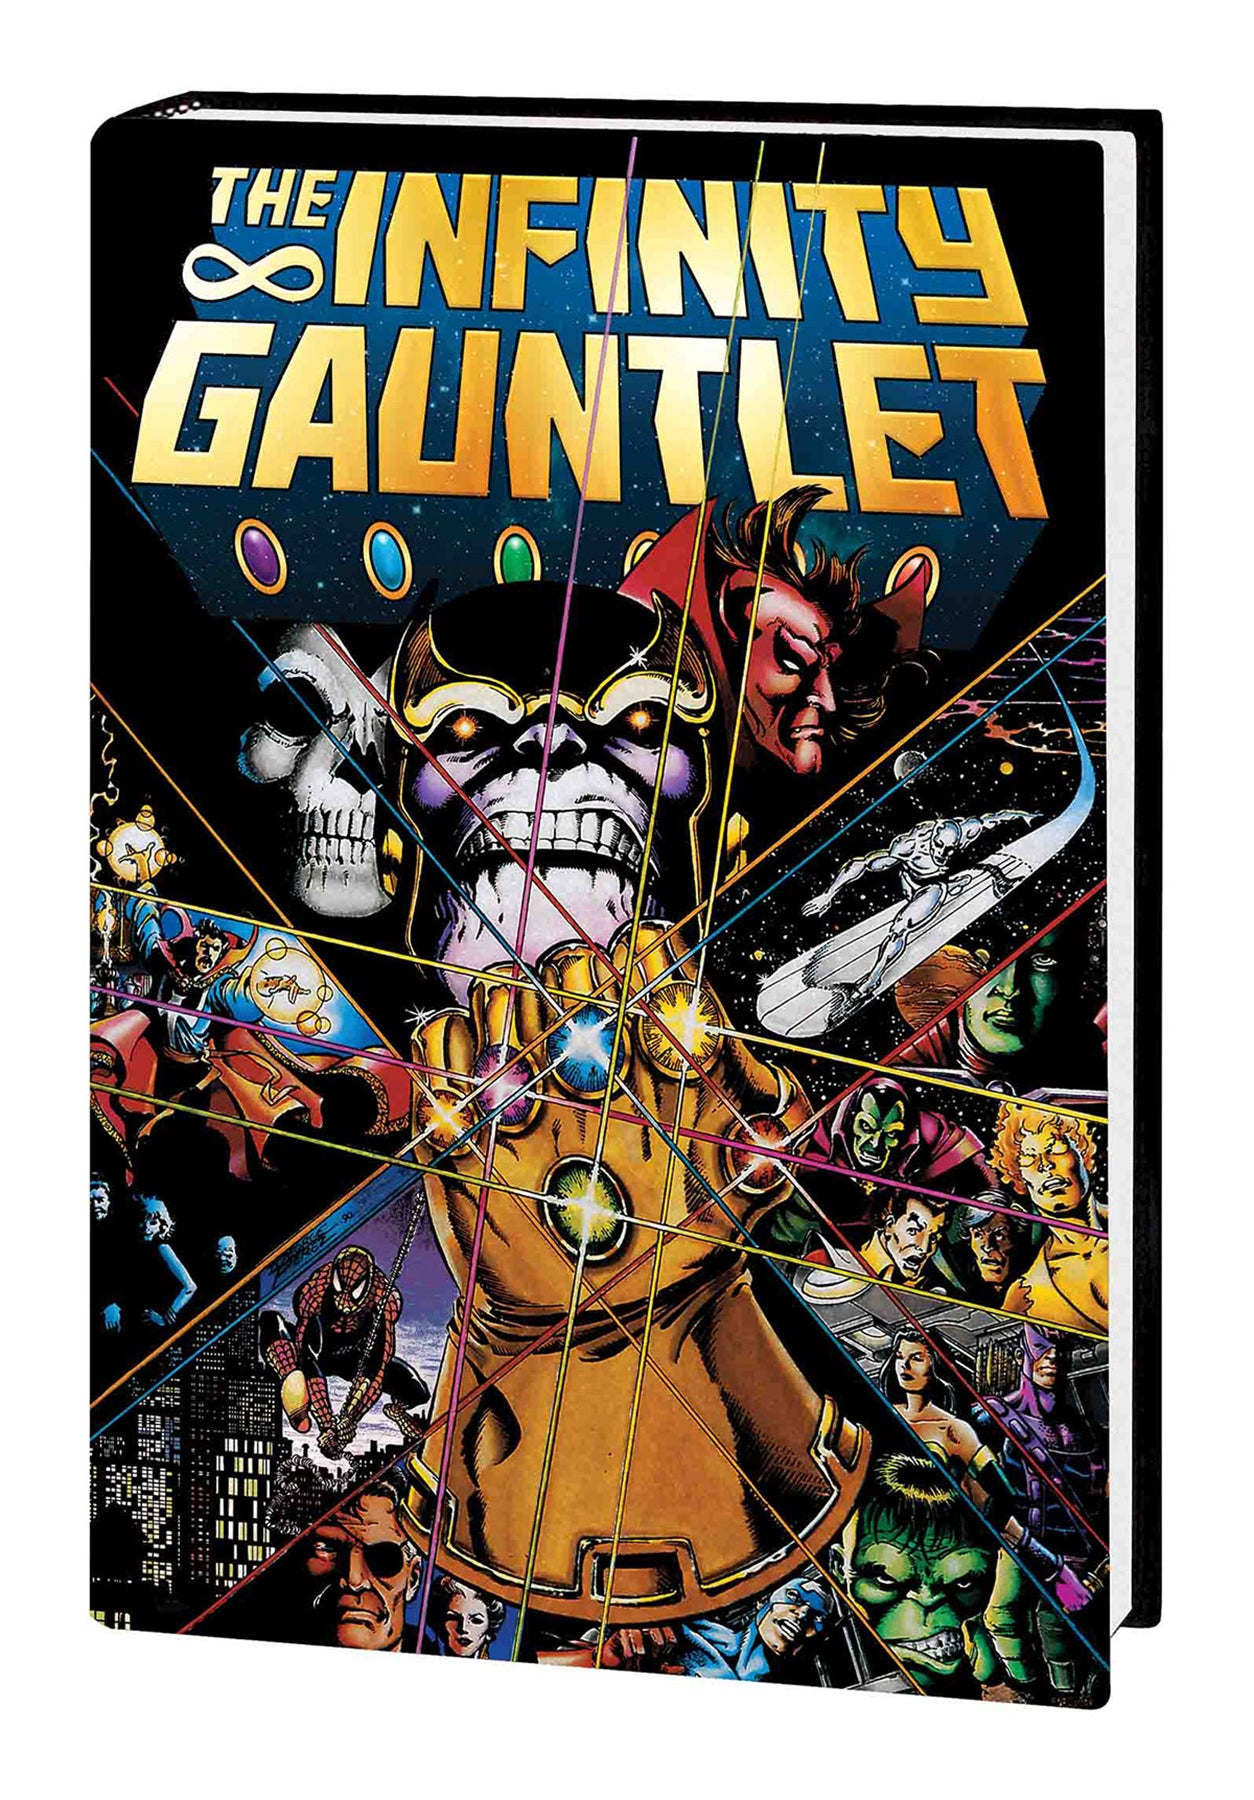 INFINITY GAUNTLET TP | Game Master's Emporium (The New GME)